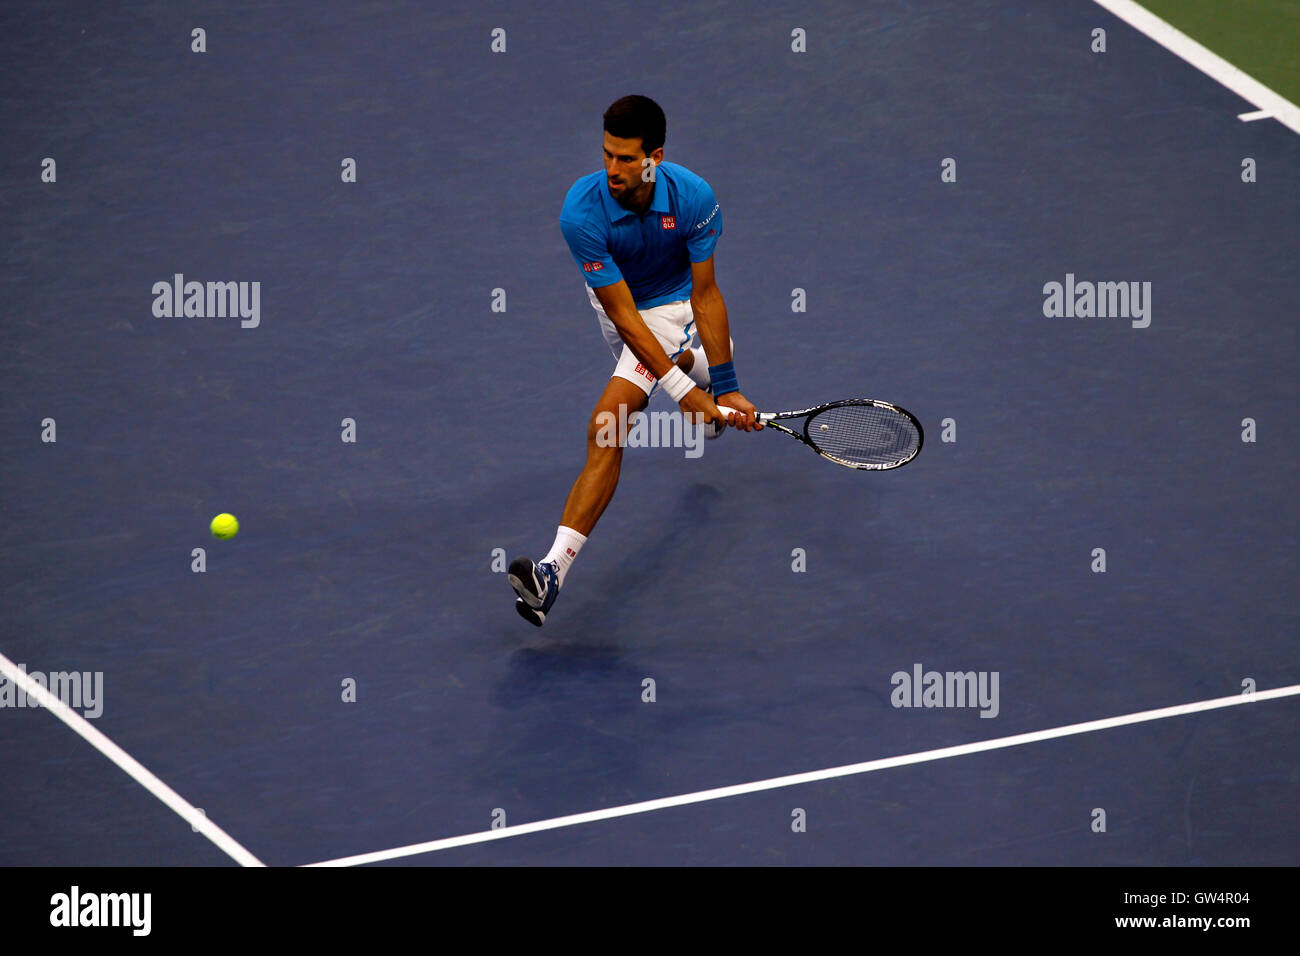 New York, United States. 11th Sep, 2016. Novak Djokovic during the United States Open Tennis Championships Final - Stock Image